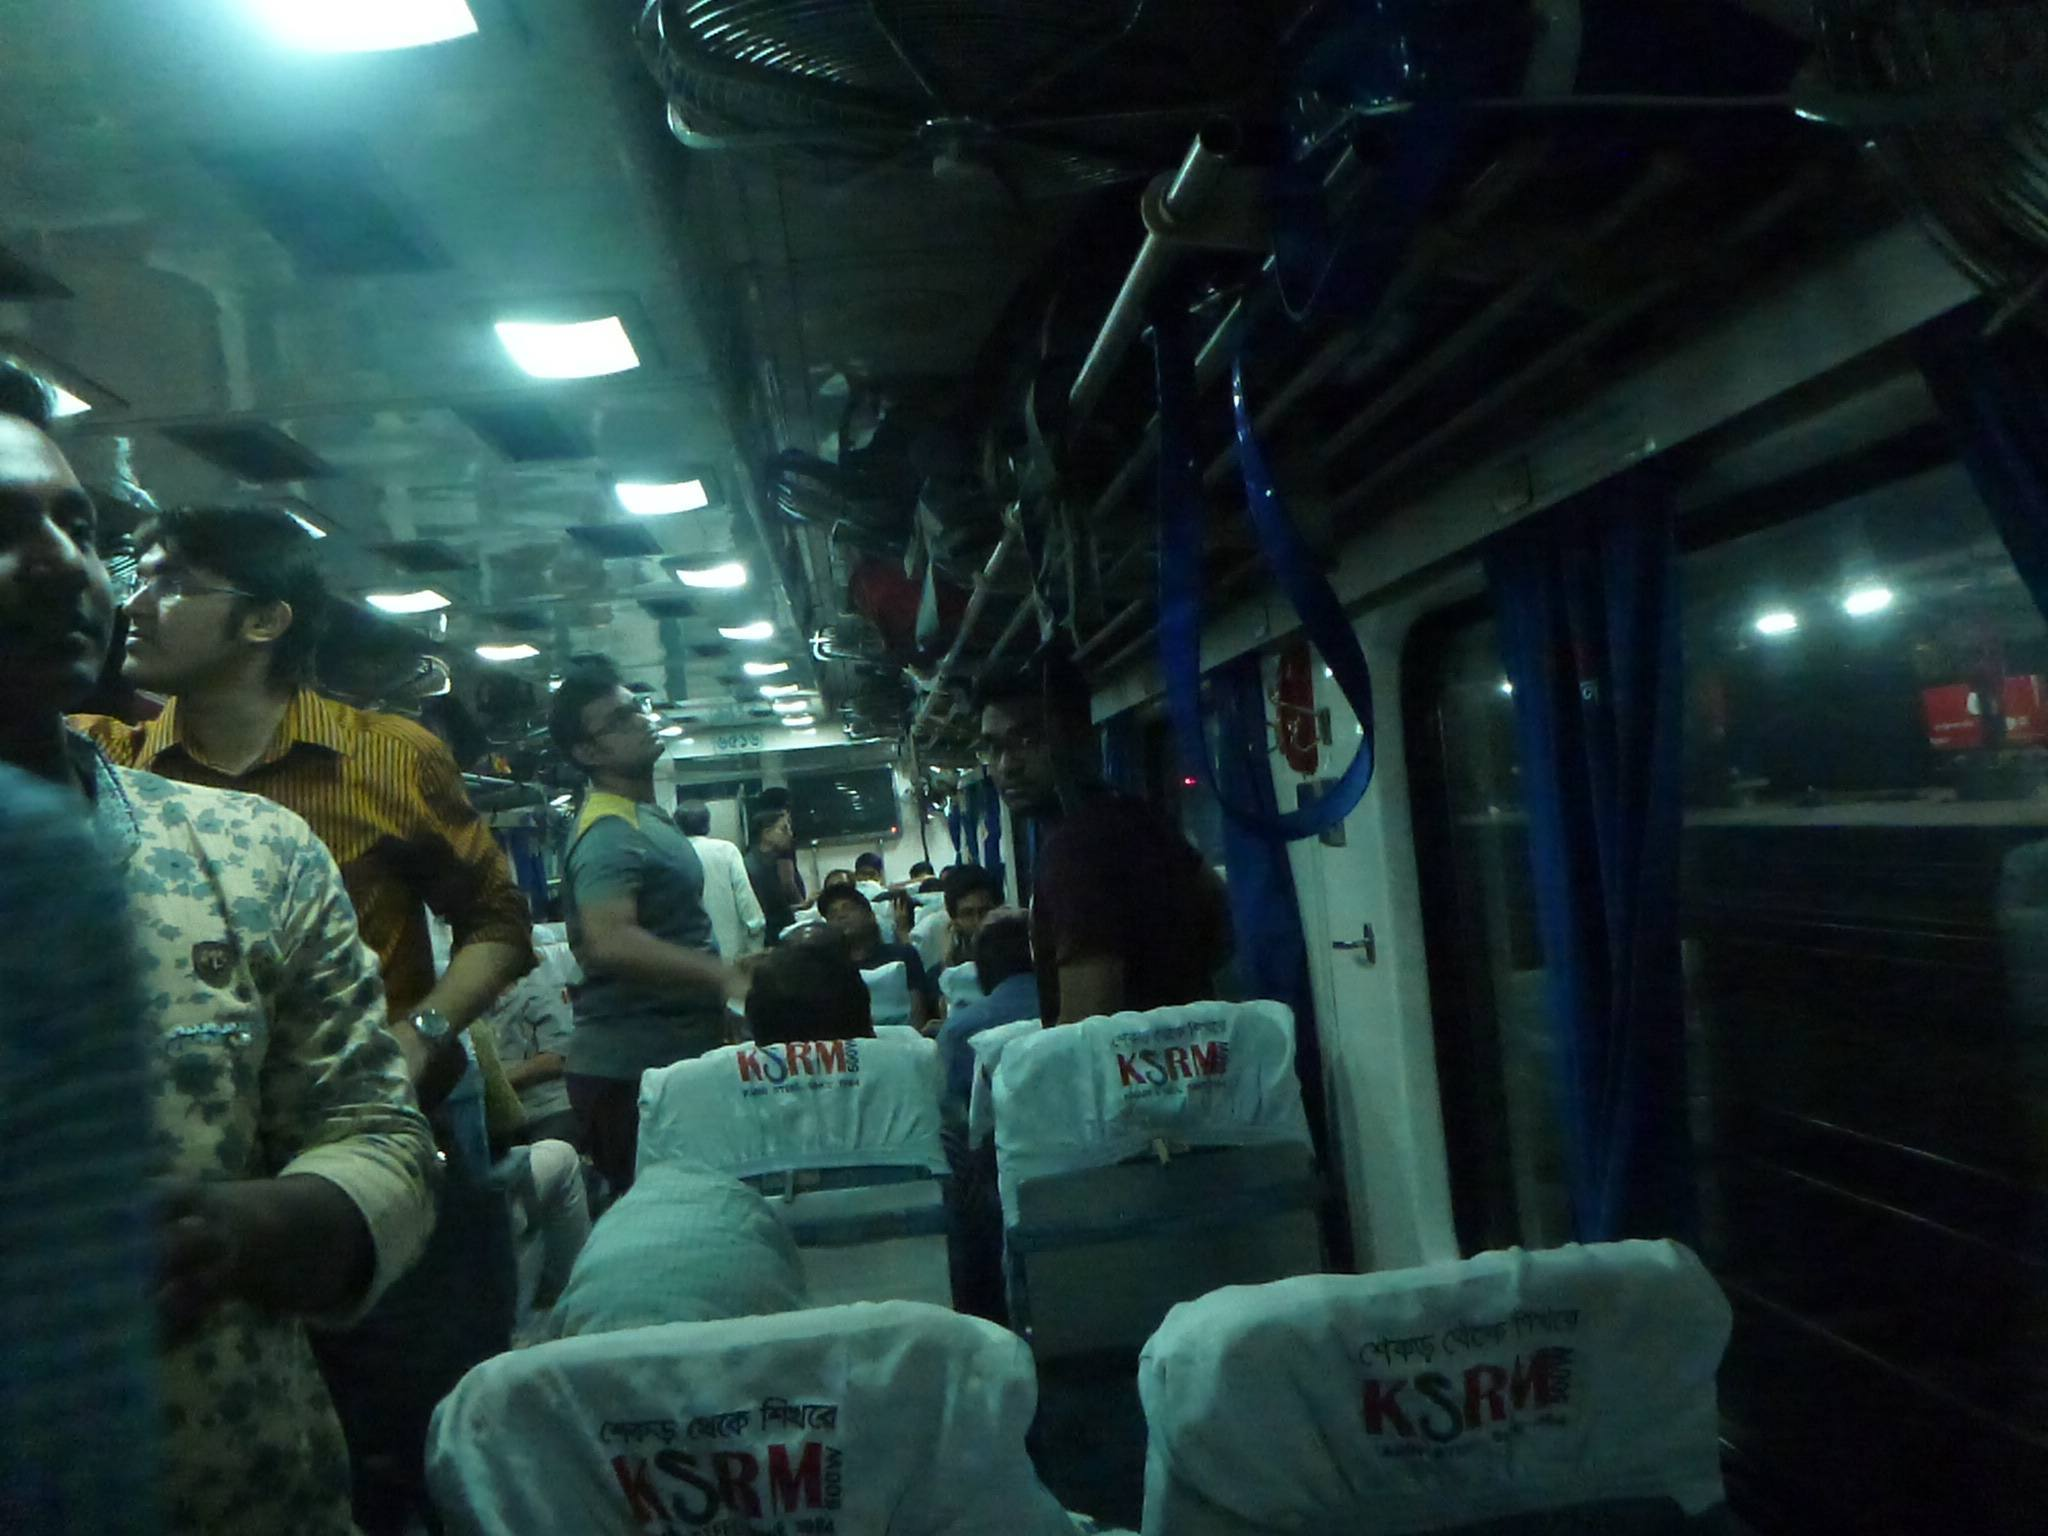 backpacking in bangladesh the long slow sad night train from